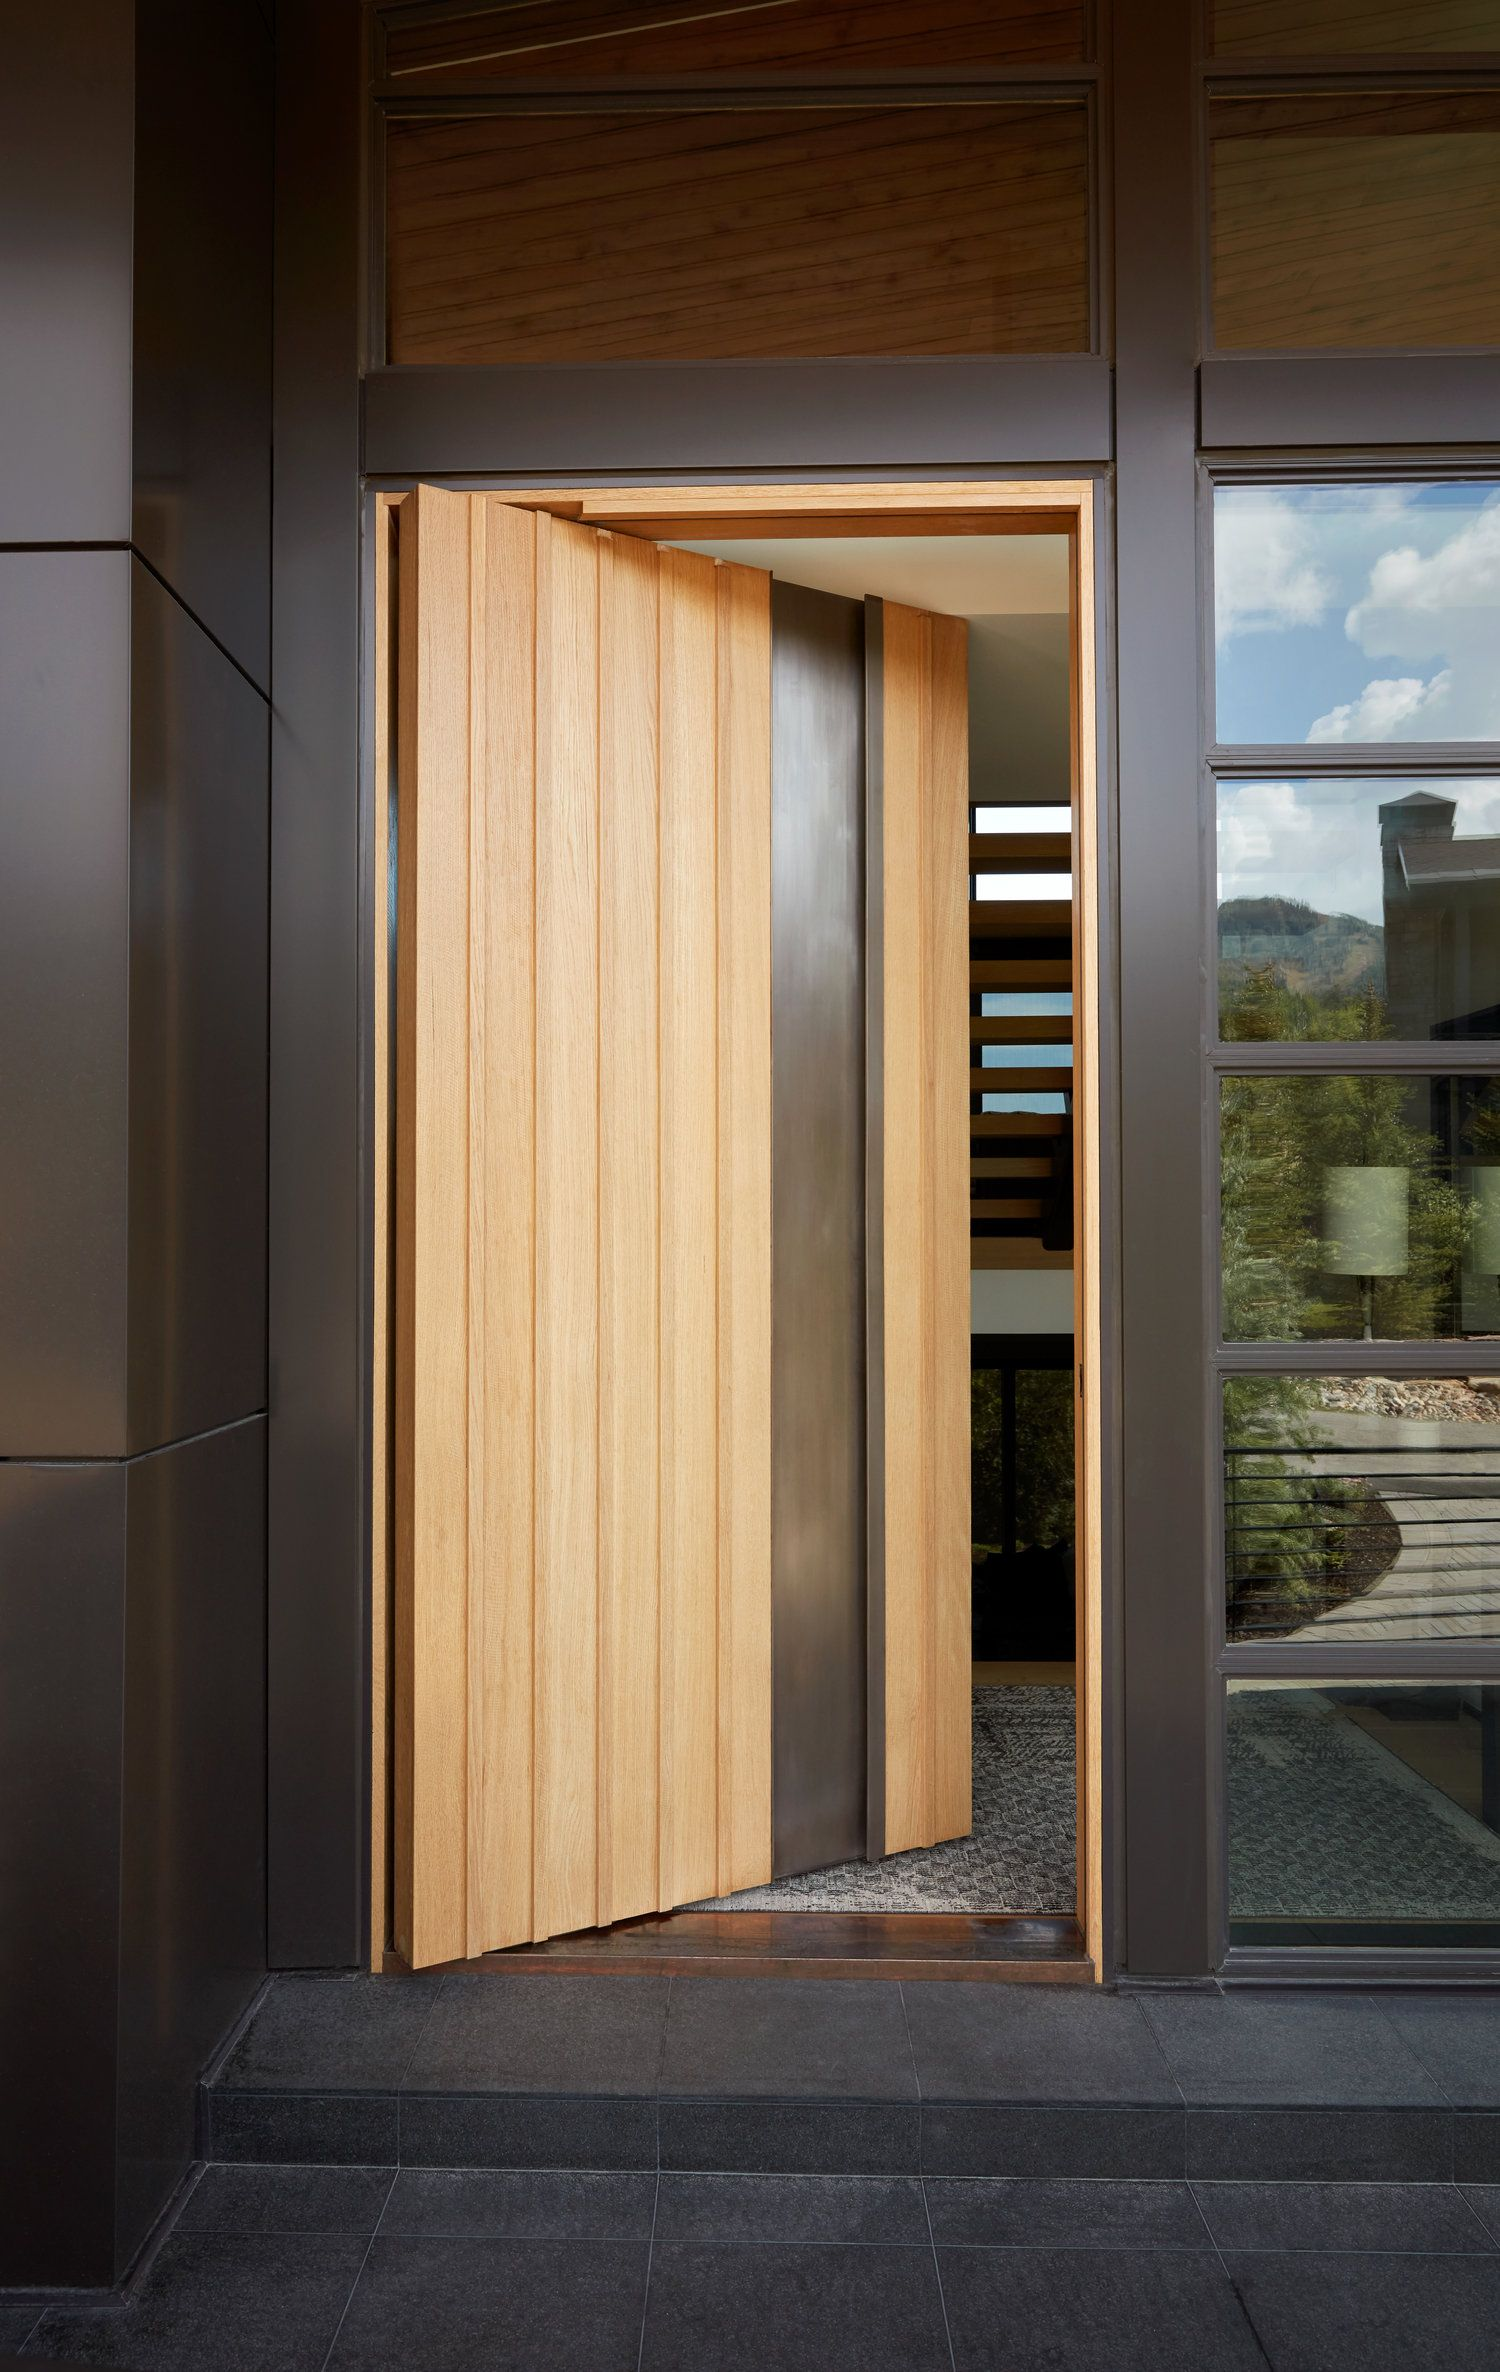 Lecate Custom Exterior Entry Doors In 2020 Exterior Entry Doors Modern Exterior Doors Pivot Doors